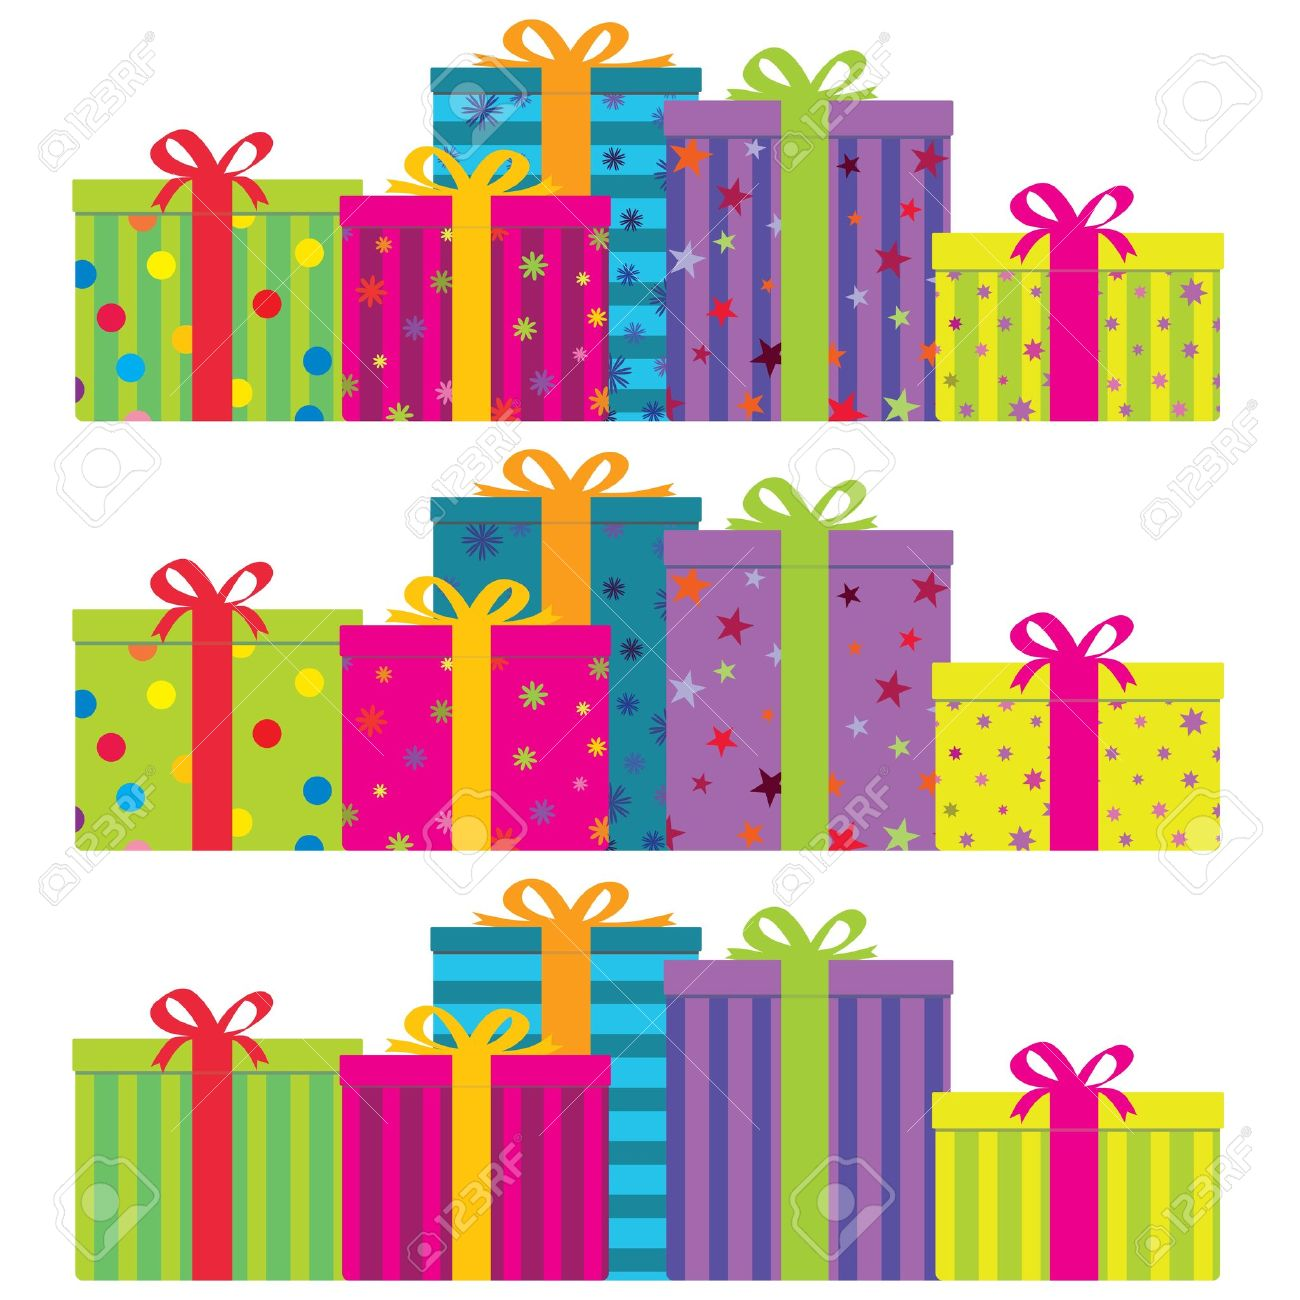 colorful gift boxes in 3 decorative styles. No gradients. Stock Vector - 9037271